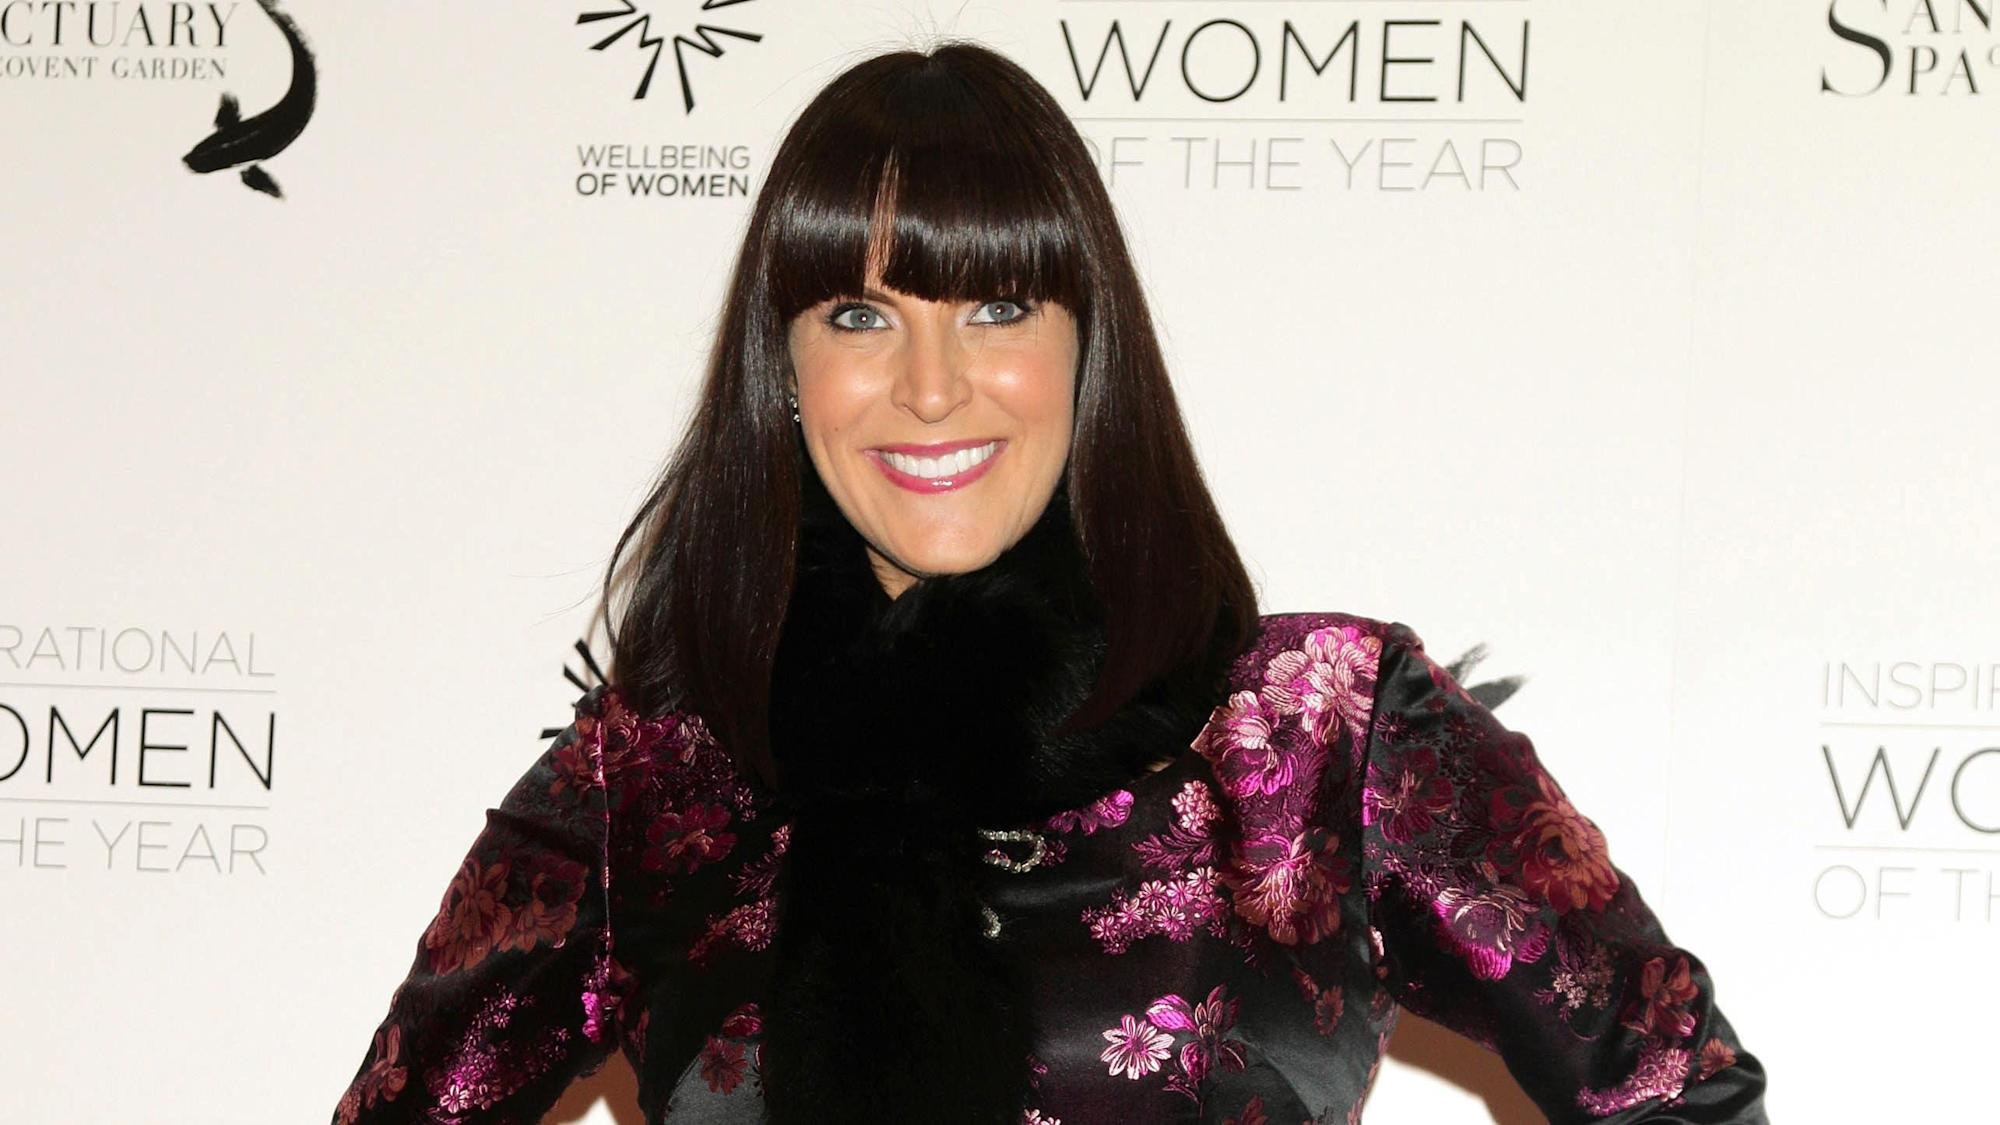 Anna Richardson to replace Davina McCall in Changing Rooms reboot on Channel 4